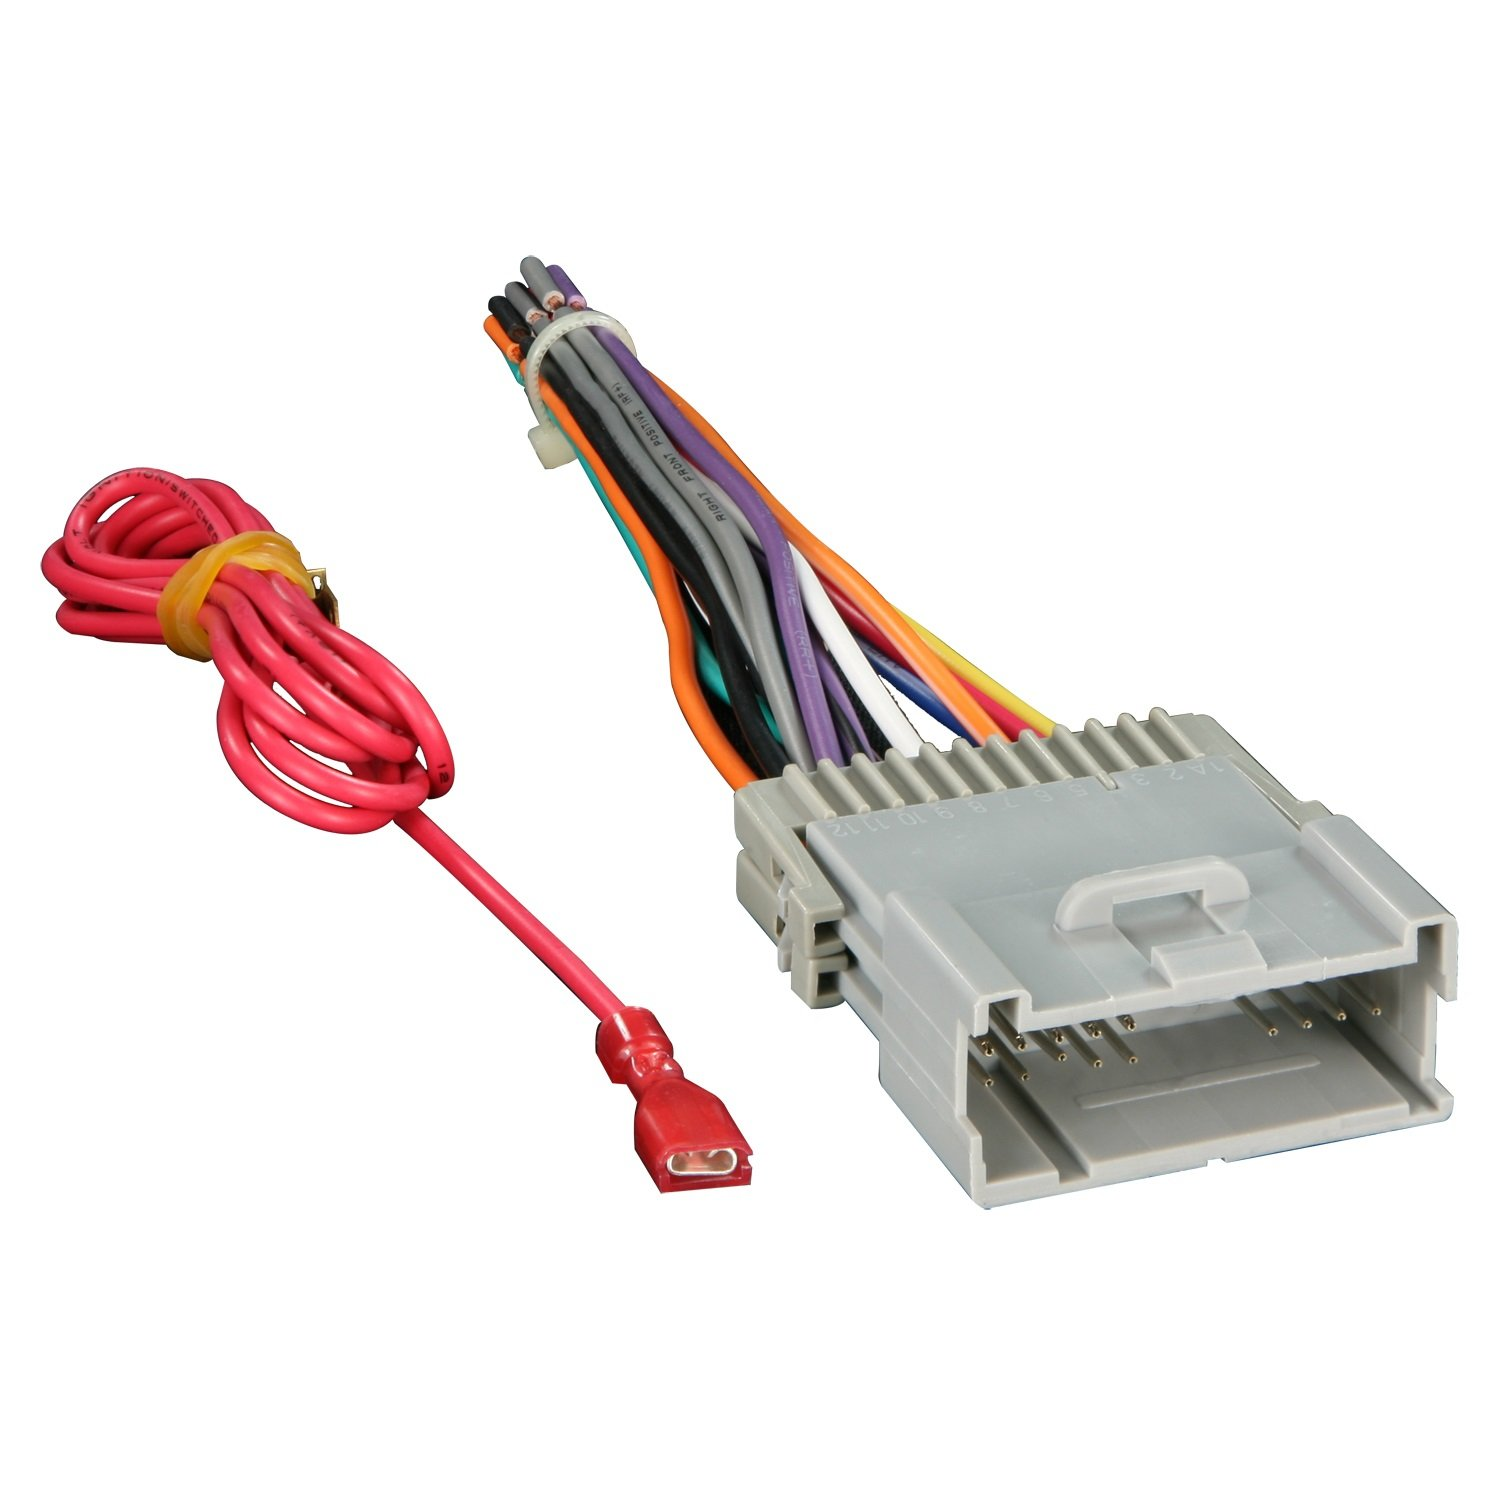 61eewxp9orL._SL1500_ amazon com metra 70 2003 radio wiring harness for gm 98 08 wire harness for aftermarket radio installation at gsmportal.co